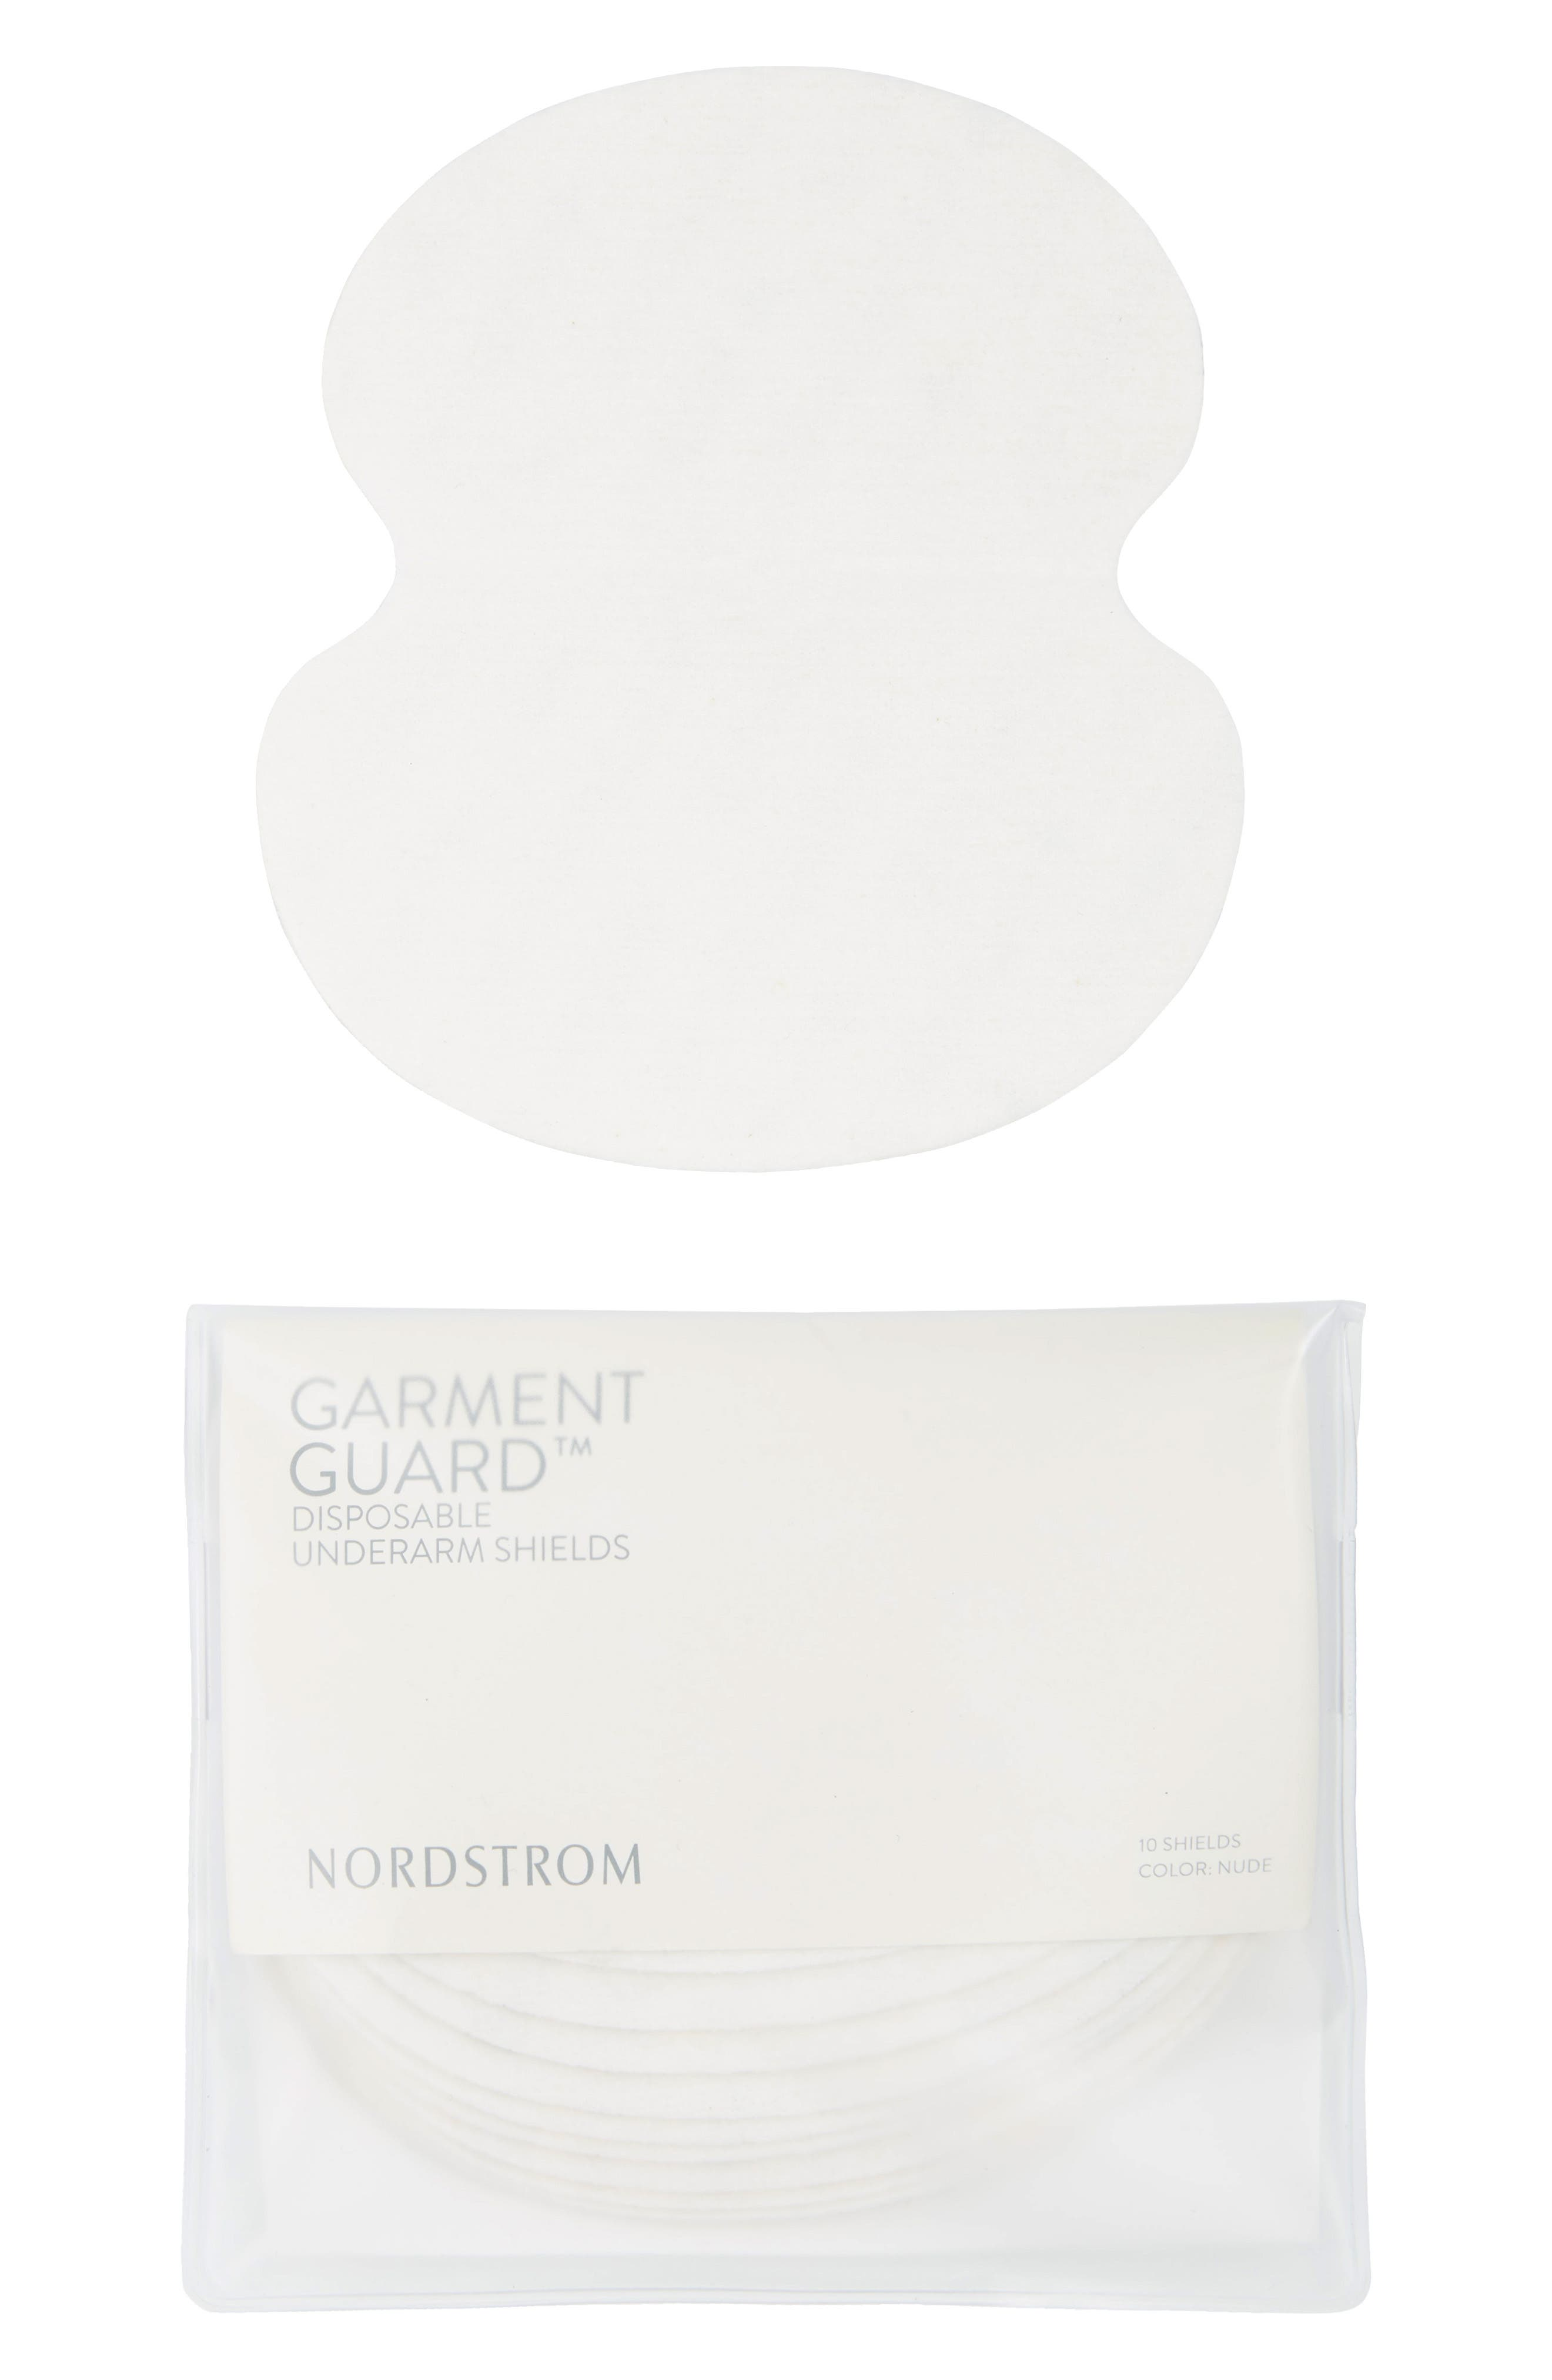 Nordstrom Five Pairs Disposable Lingerie Garment Guards